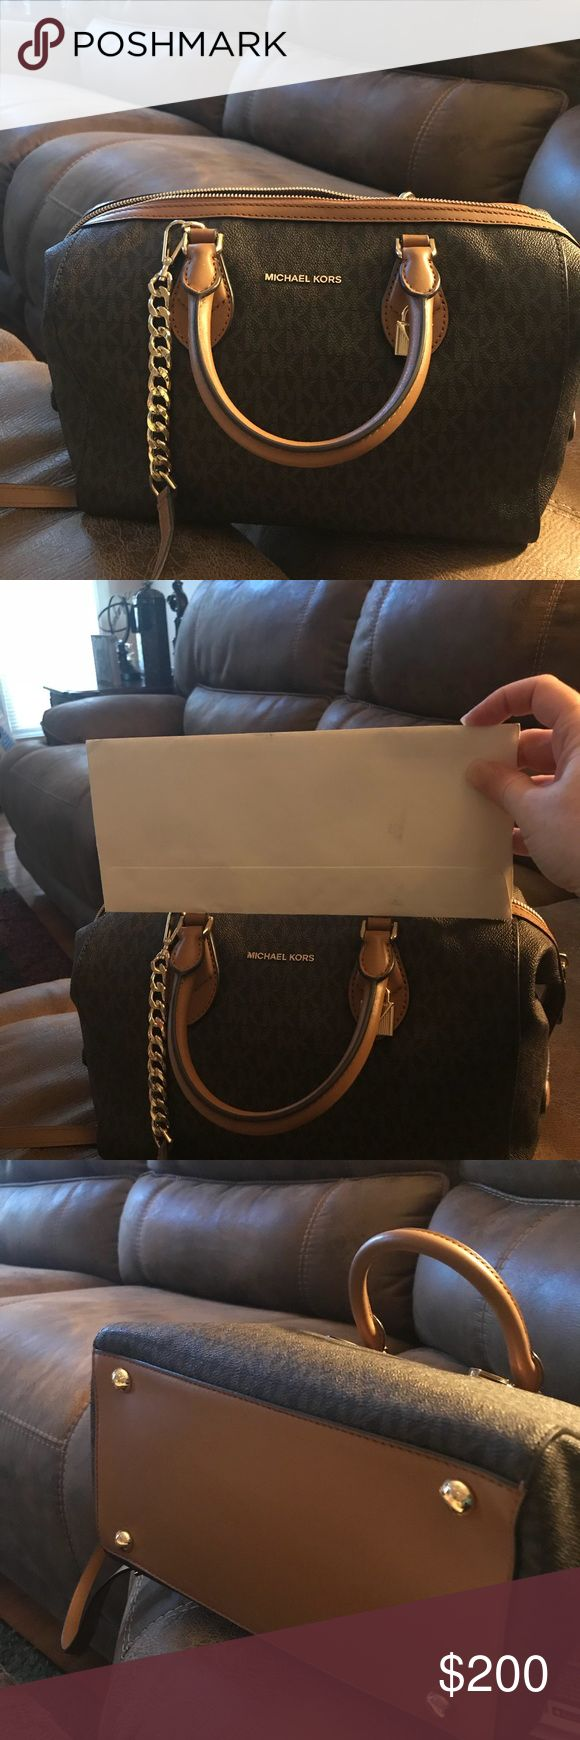 Michael Kors Brown Monogram Satchel/crossbody Purchased in January 2018.  Carried about a month realIzed it's too big for me. Retail price is $348.00. I paid $208.80 plus tax   Not sure of the measurements but in one of the pictures I'm holding a regular sized envelope and it easily fills inside the bag with room to spare.  From my observance there are no stains rips or holes in the interior of the purse it's in like new condition    Strap is detachable.  Tag is still attached Michael Kors…